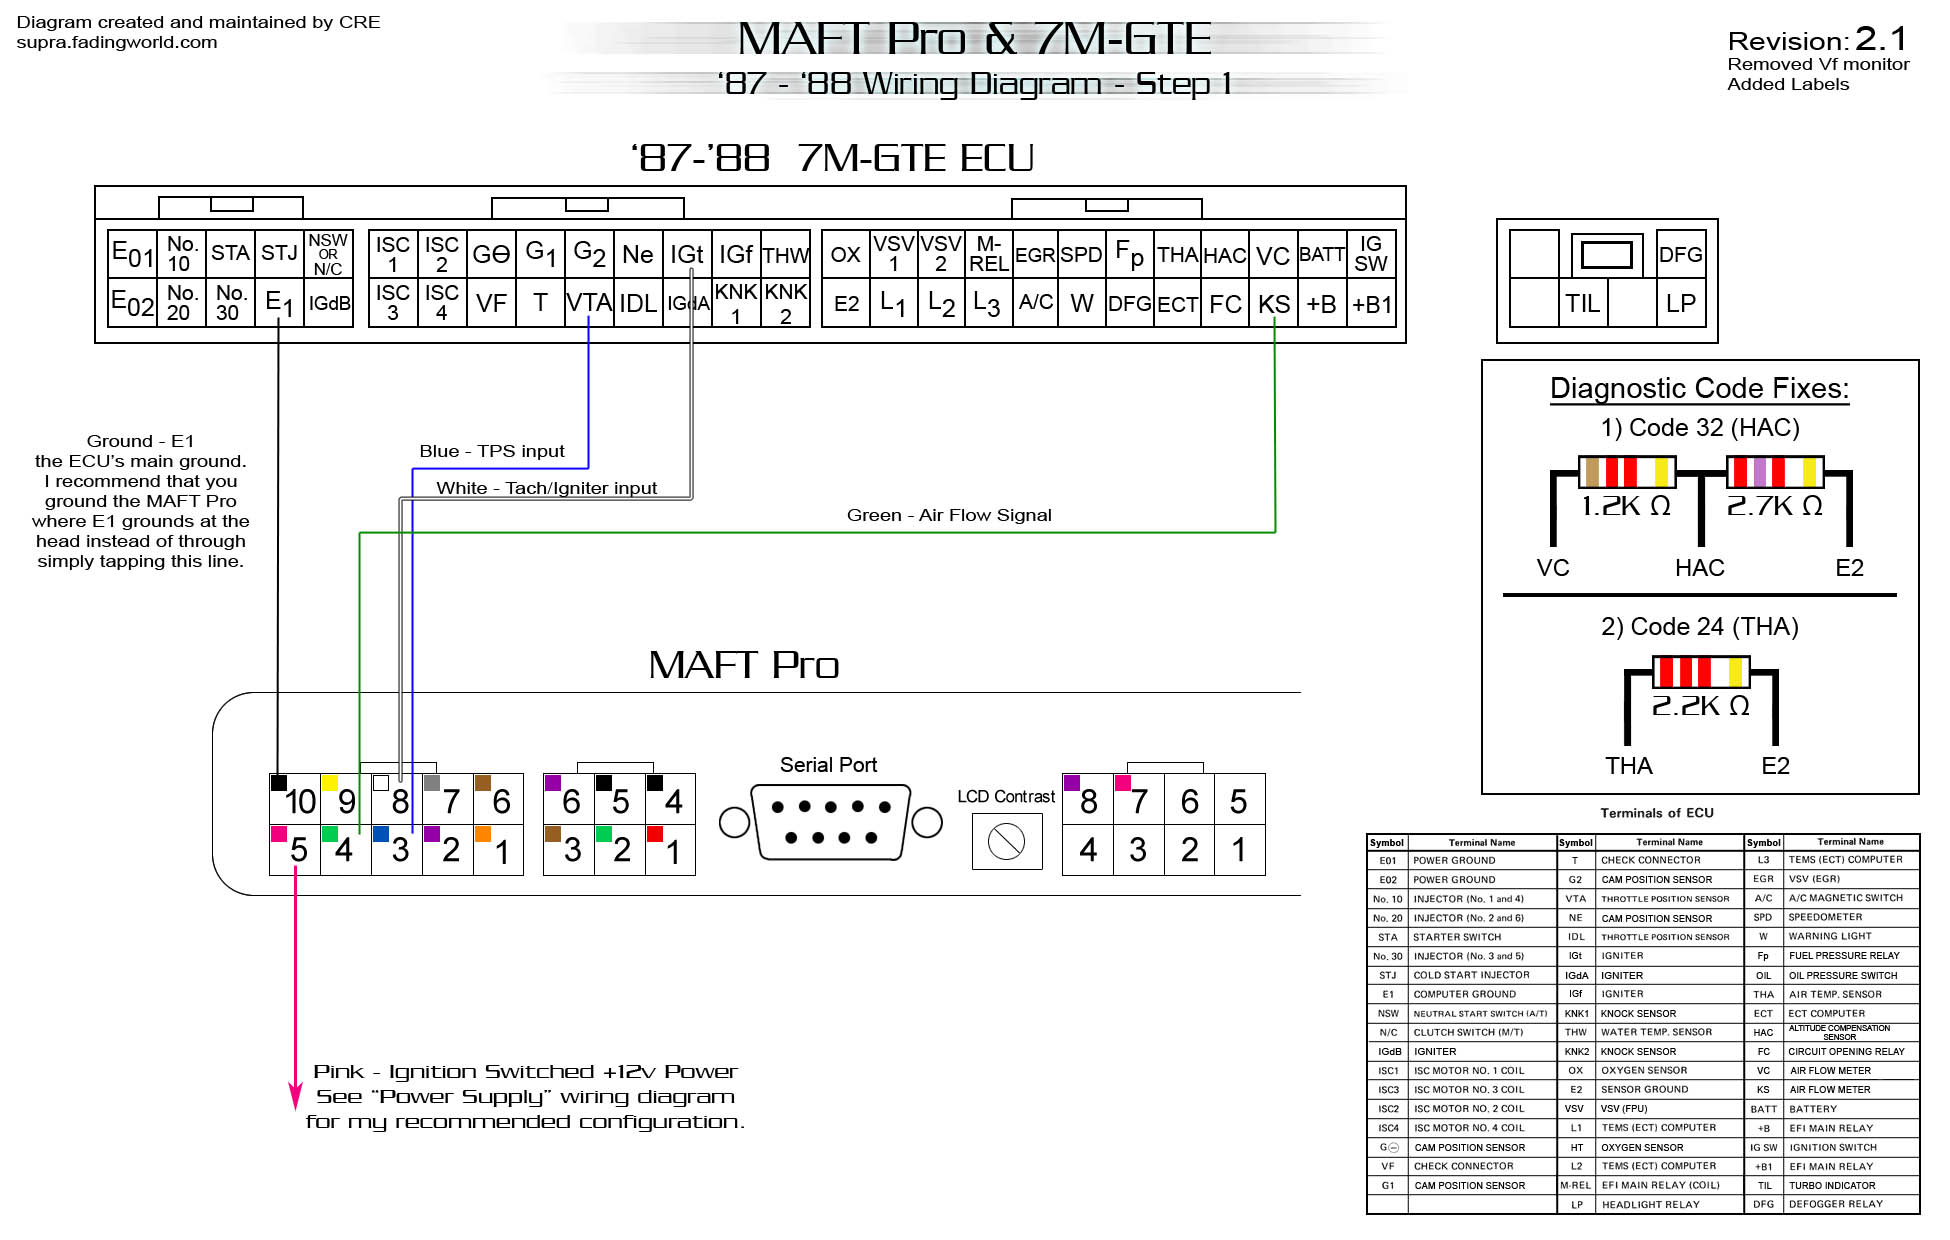 87 88 Wiring Diagram Rev. 2.1 (CRE) trouble wiring maft pro in 87 mk3 full throttle speed tech support mk3 supra wiring diagram at panicattacktreatment.co